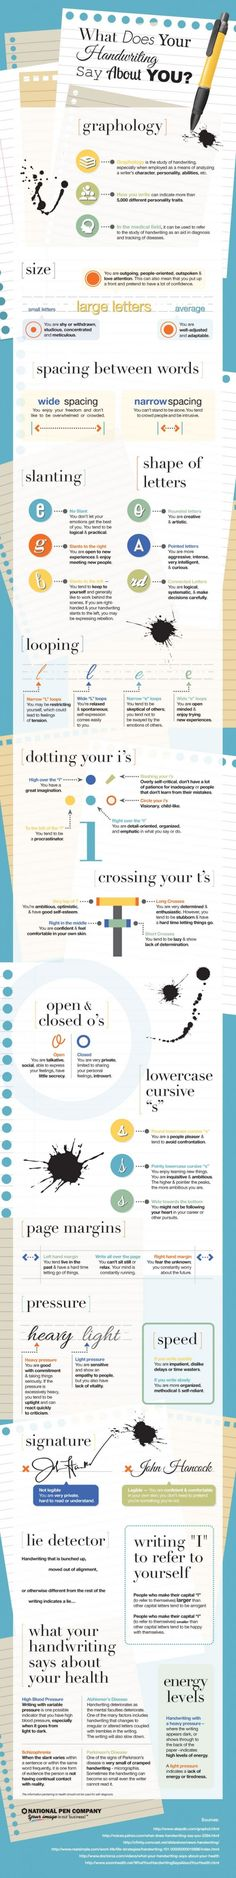 INFOGRAPHIC: WHAT DOES YOUR HANDWRITING SAY ABOUT YOU